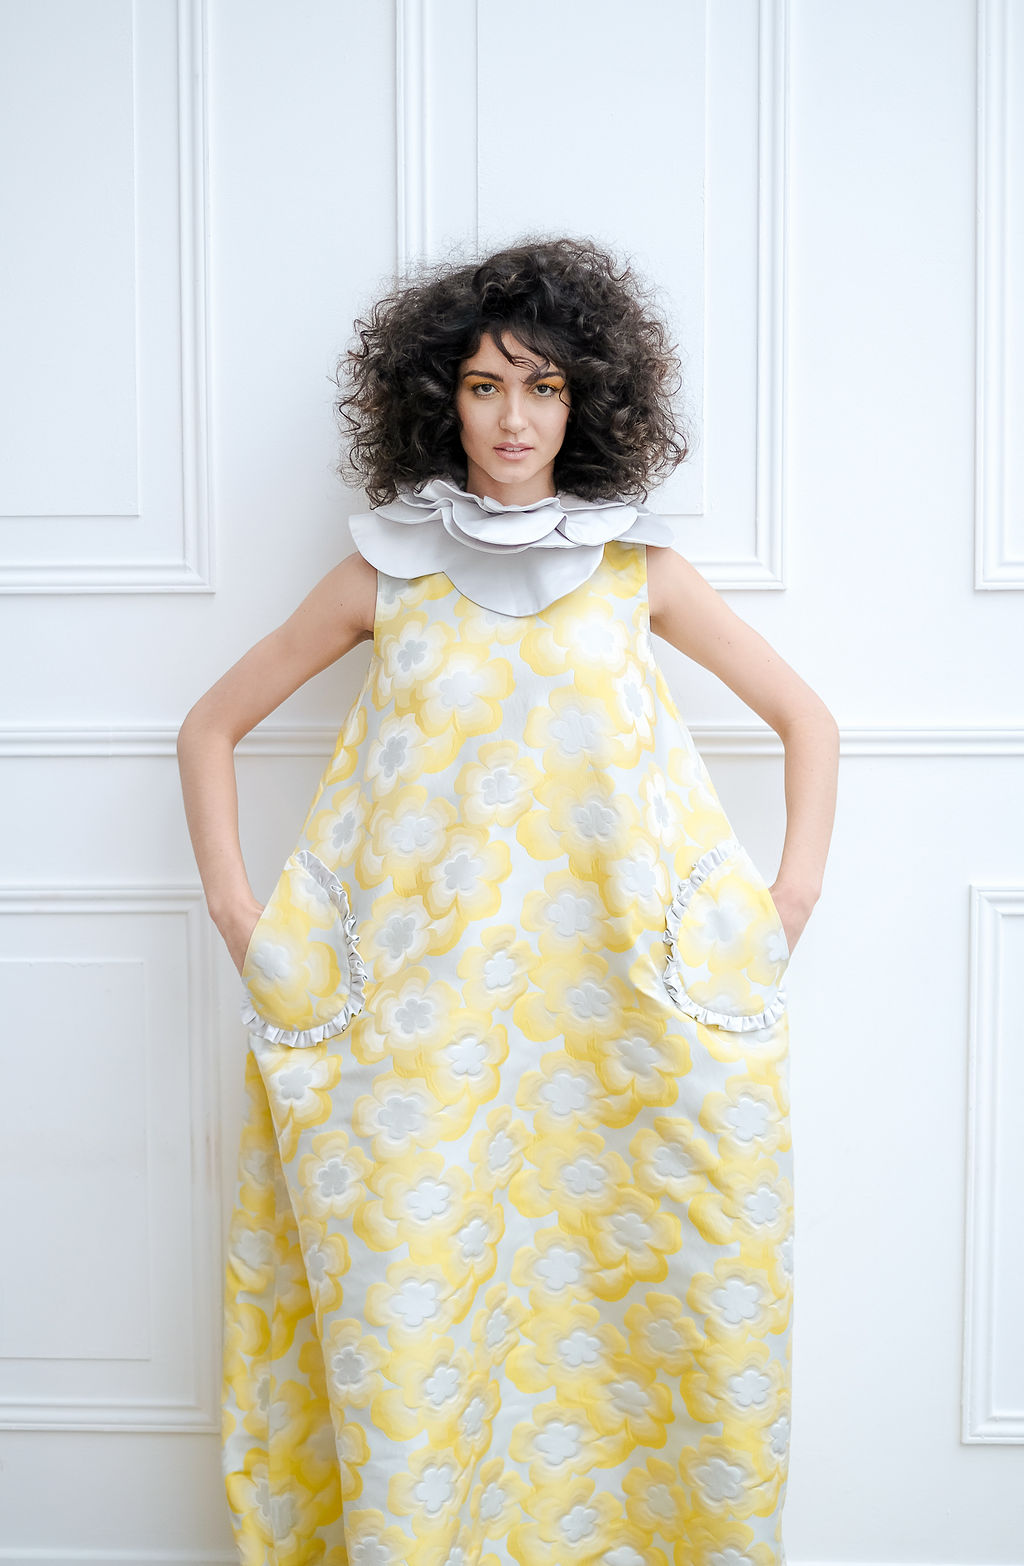 modele robe jaune a fleur coiffure afro